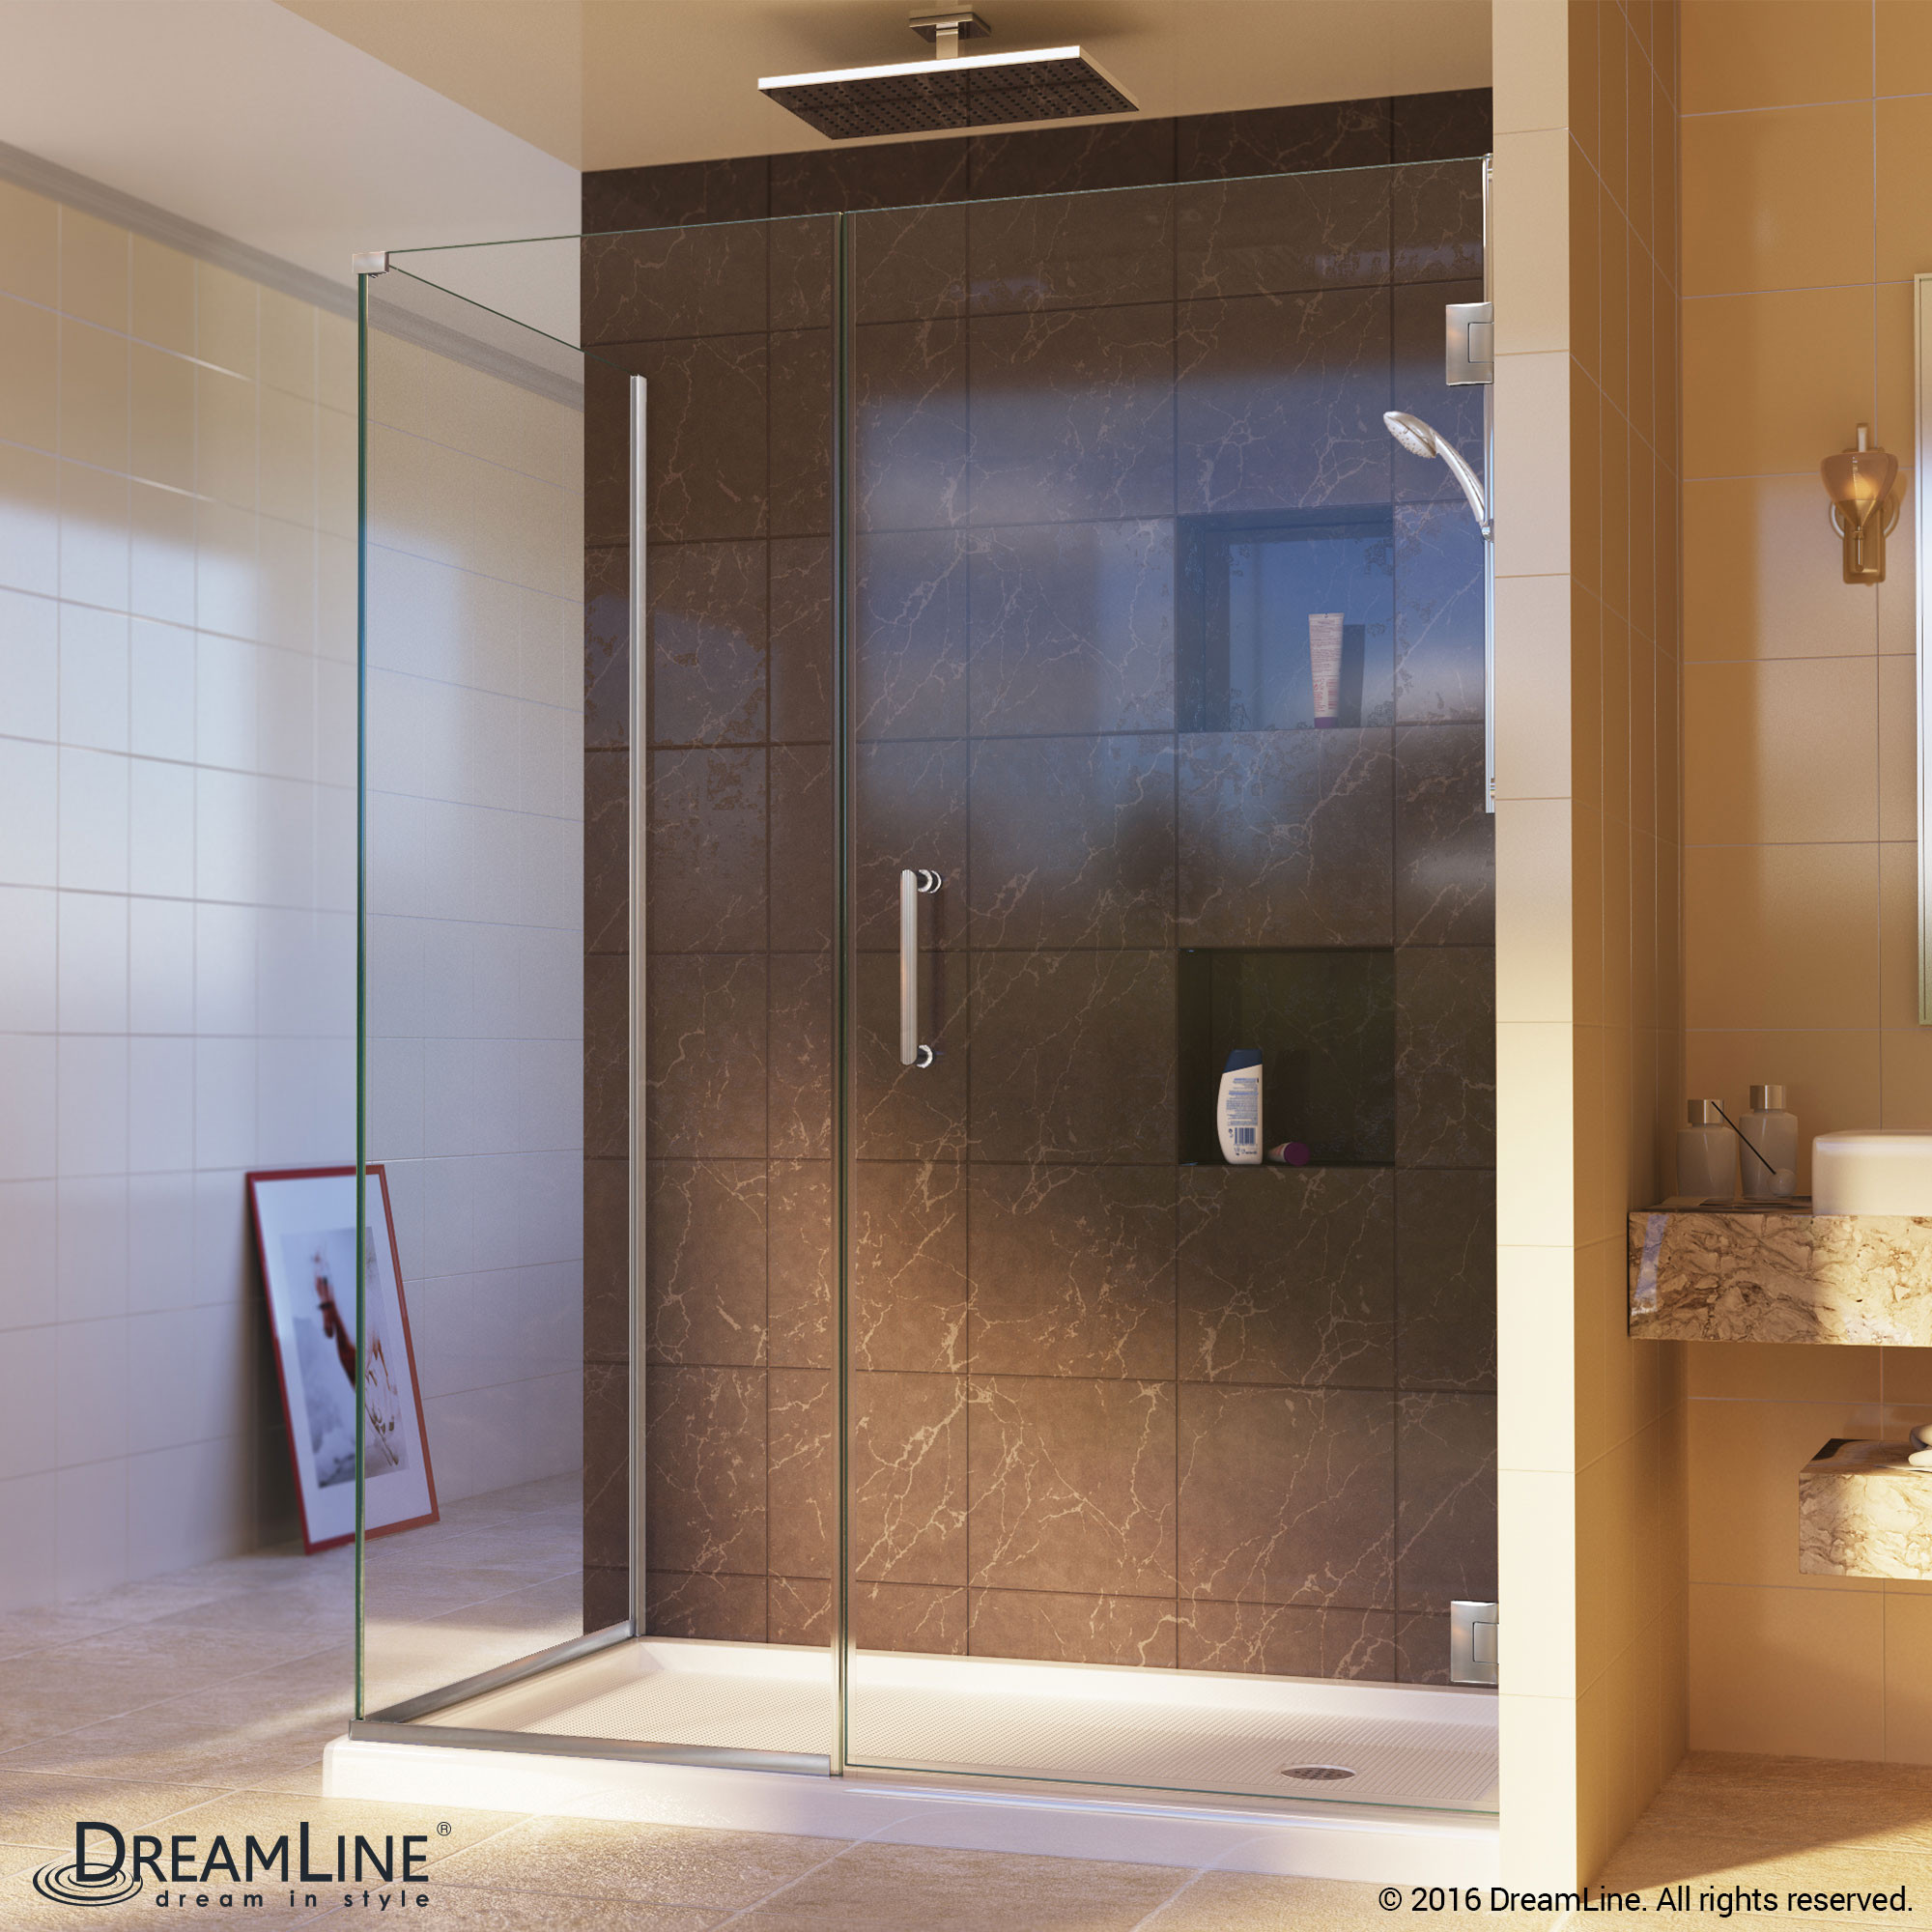 DreamLine SHEN-24340340-04 Unidoor Plus Hinged Shower Enclosure In Brushed Nickel Finish Hardware